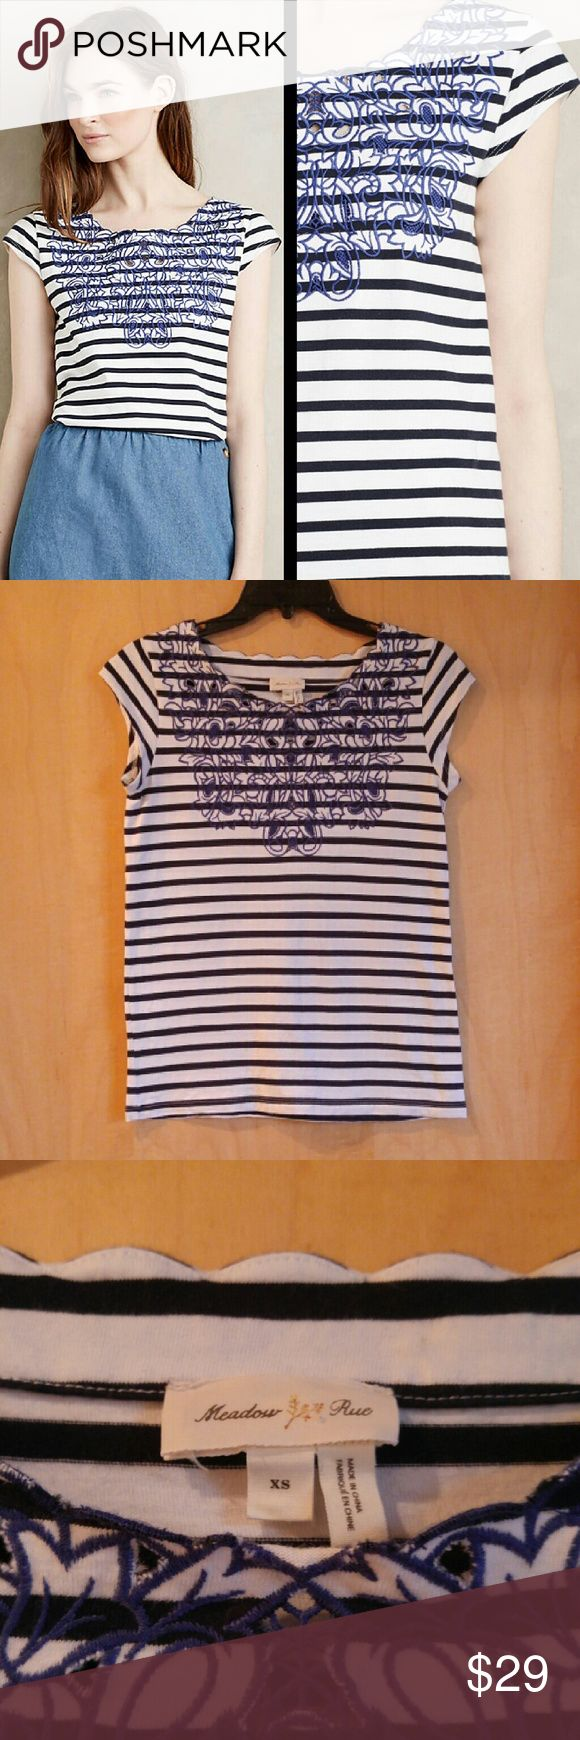 Meadow Rue Blue Palermo Embroidered Striped Tshirt Meadow Rue brand top from Anthropologie, size XS, in perfect condition! Features gorgeously intricate embroidery on front and a scalloped neckline edge. Stripes are navy and white. Perfect t-shirt for dressing up or down! Cover photo from Anthro website. Please ask any questions. No trades. Make a reasonable offer. Thanks! Anthropologie Tops Blouses